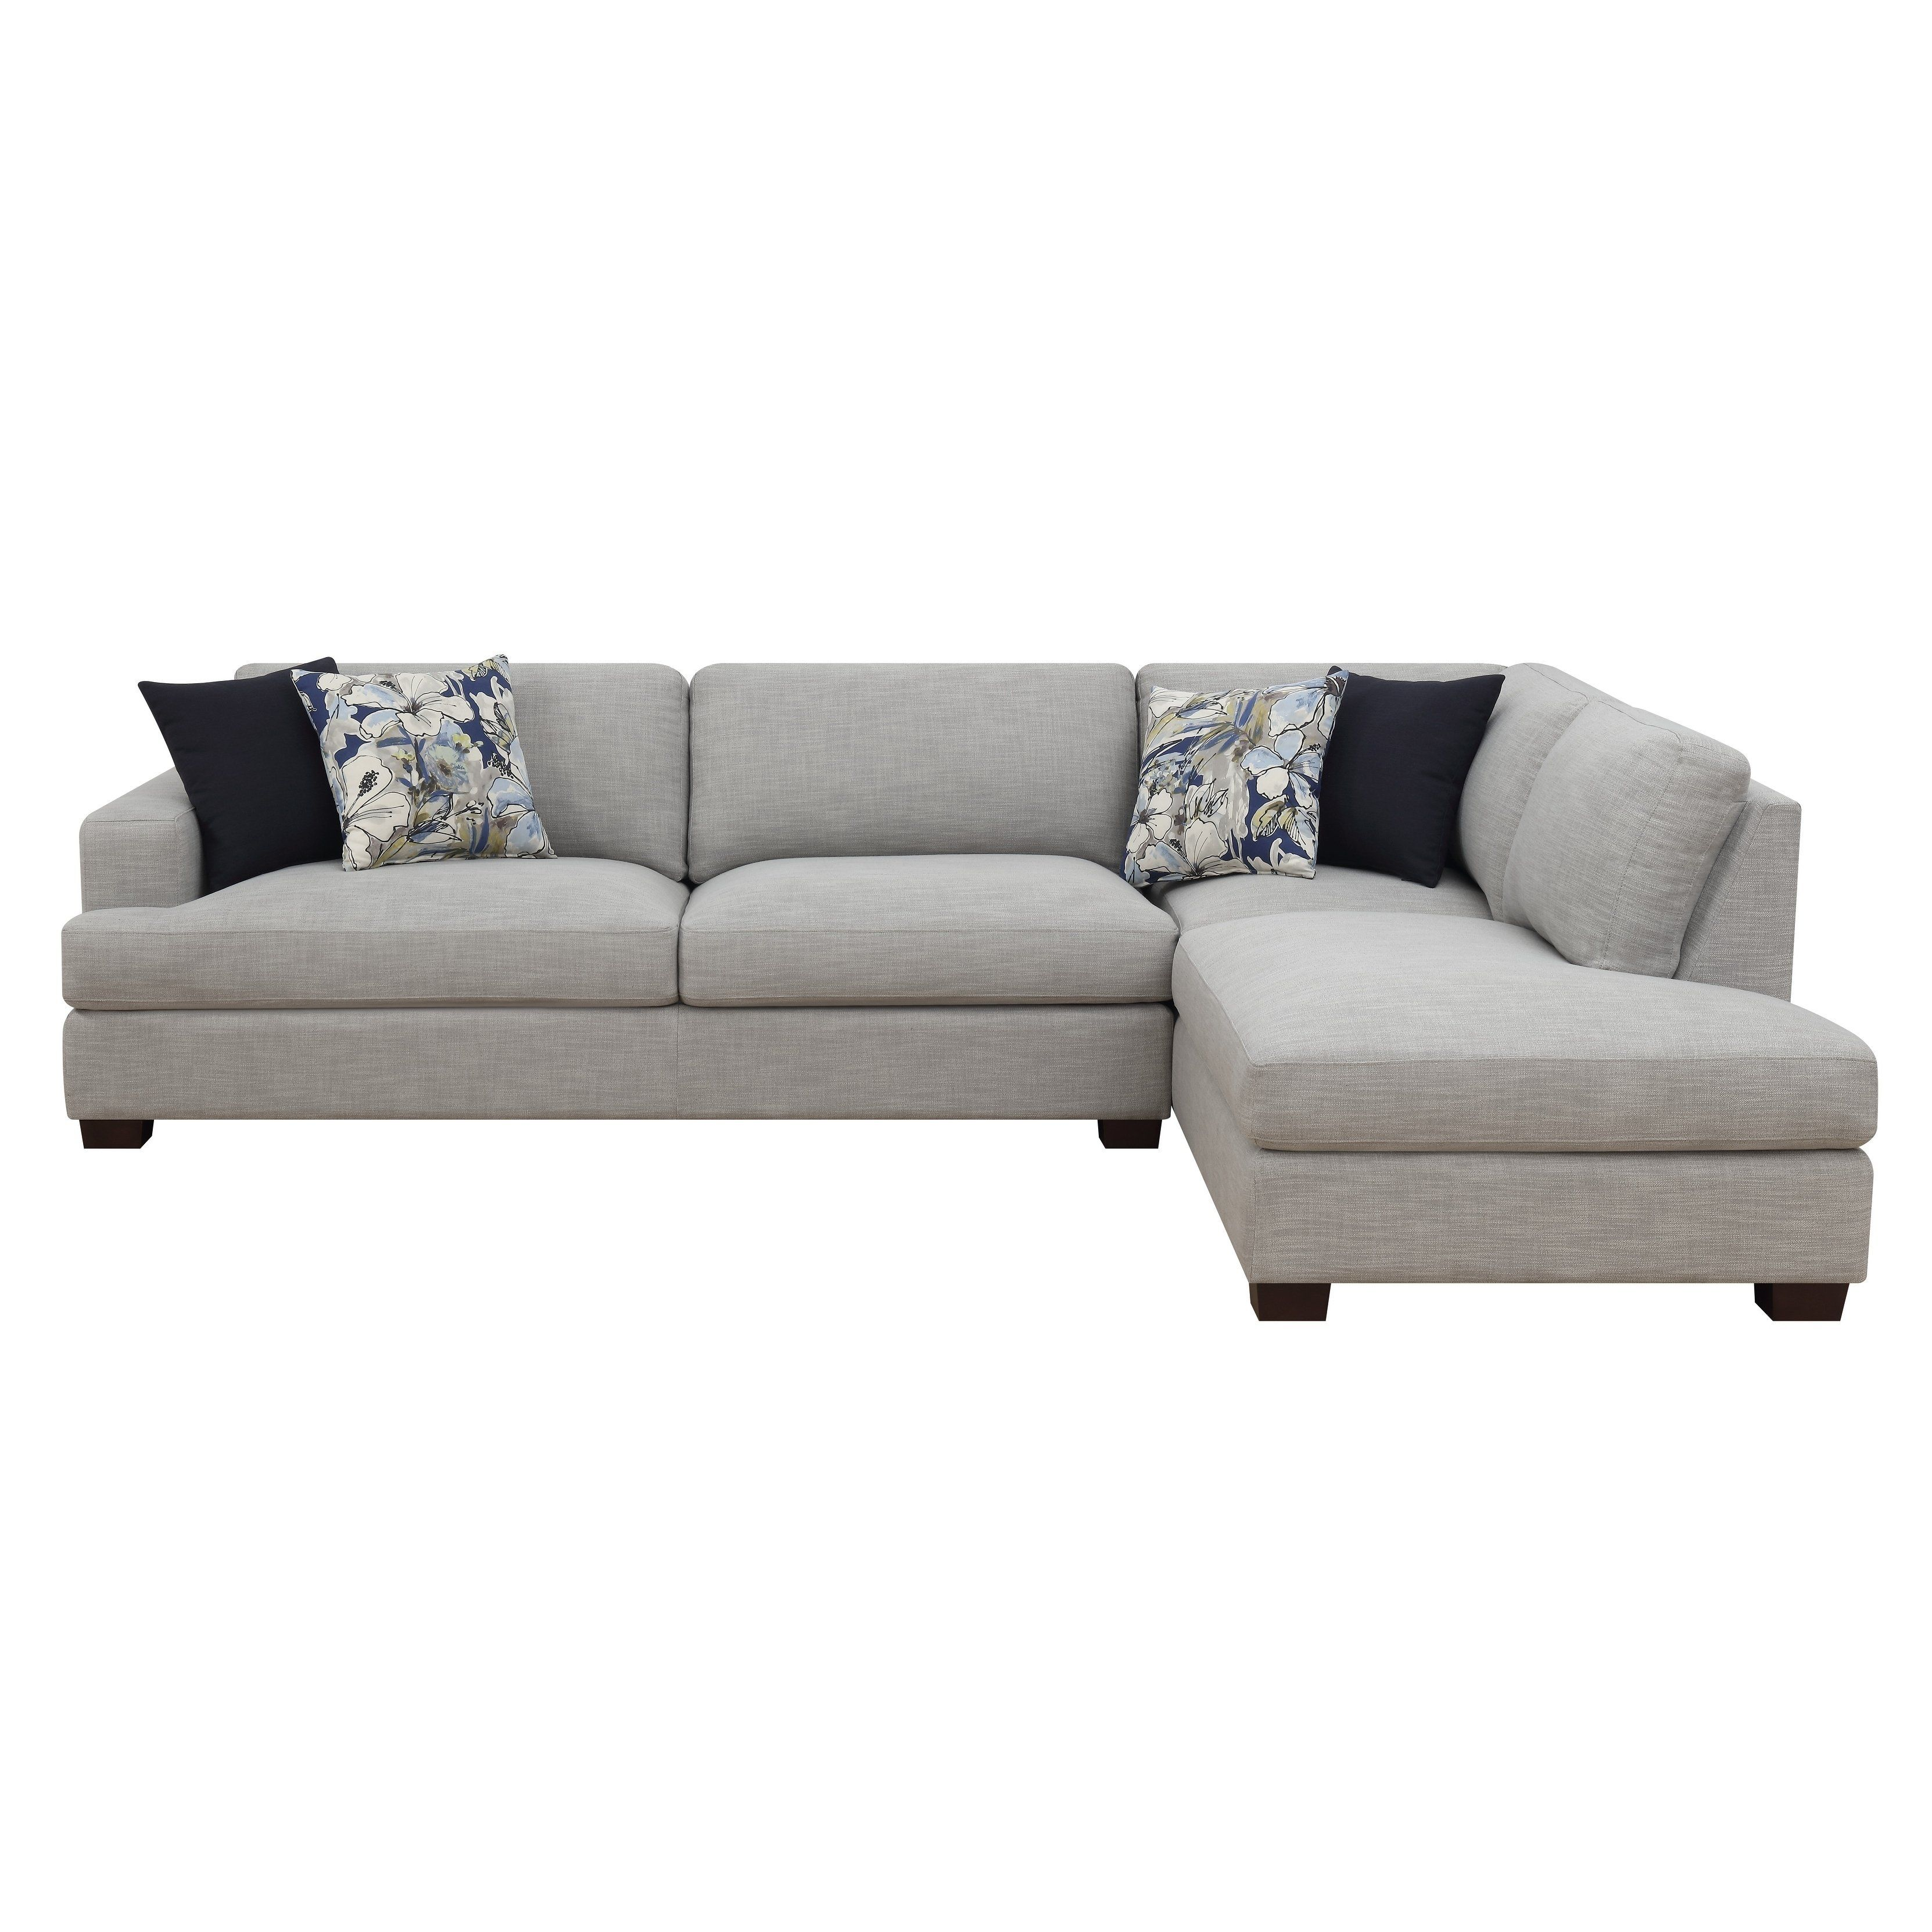 Online Shopping Bedding Furniture Electronics Jewelry Clothing More Furniture Deals Sofas For Small Spaces Sofa